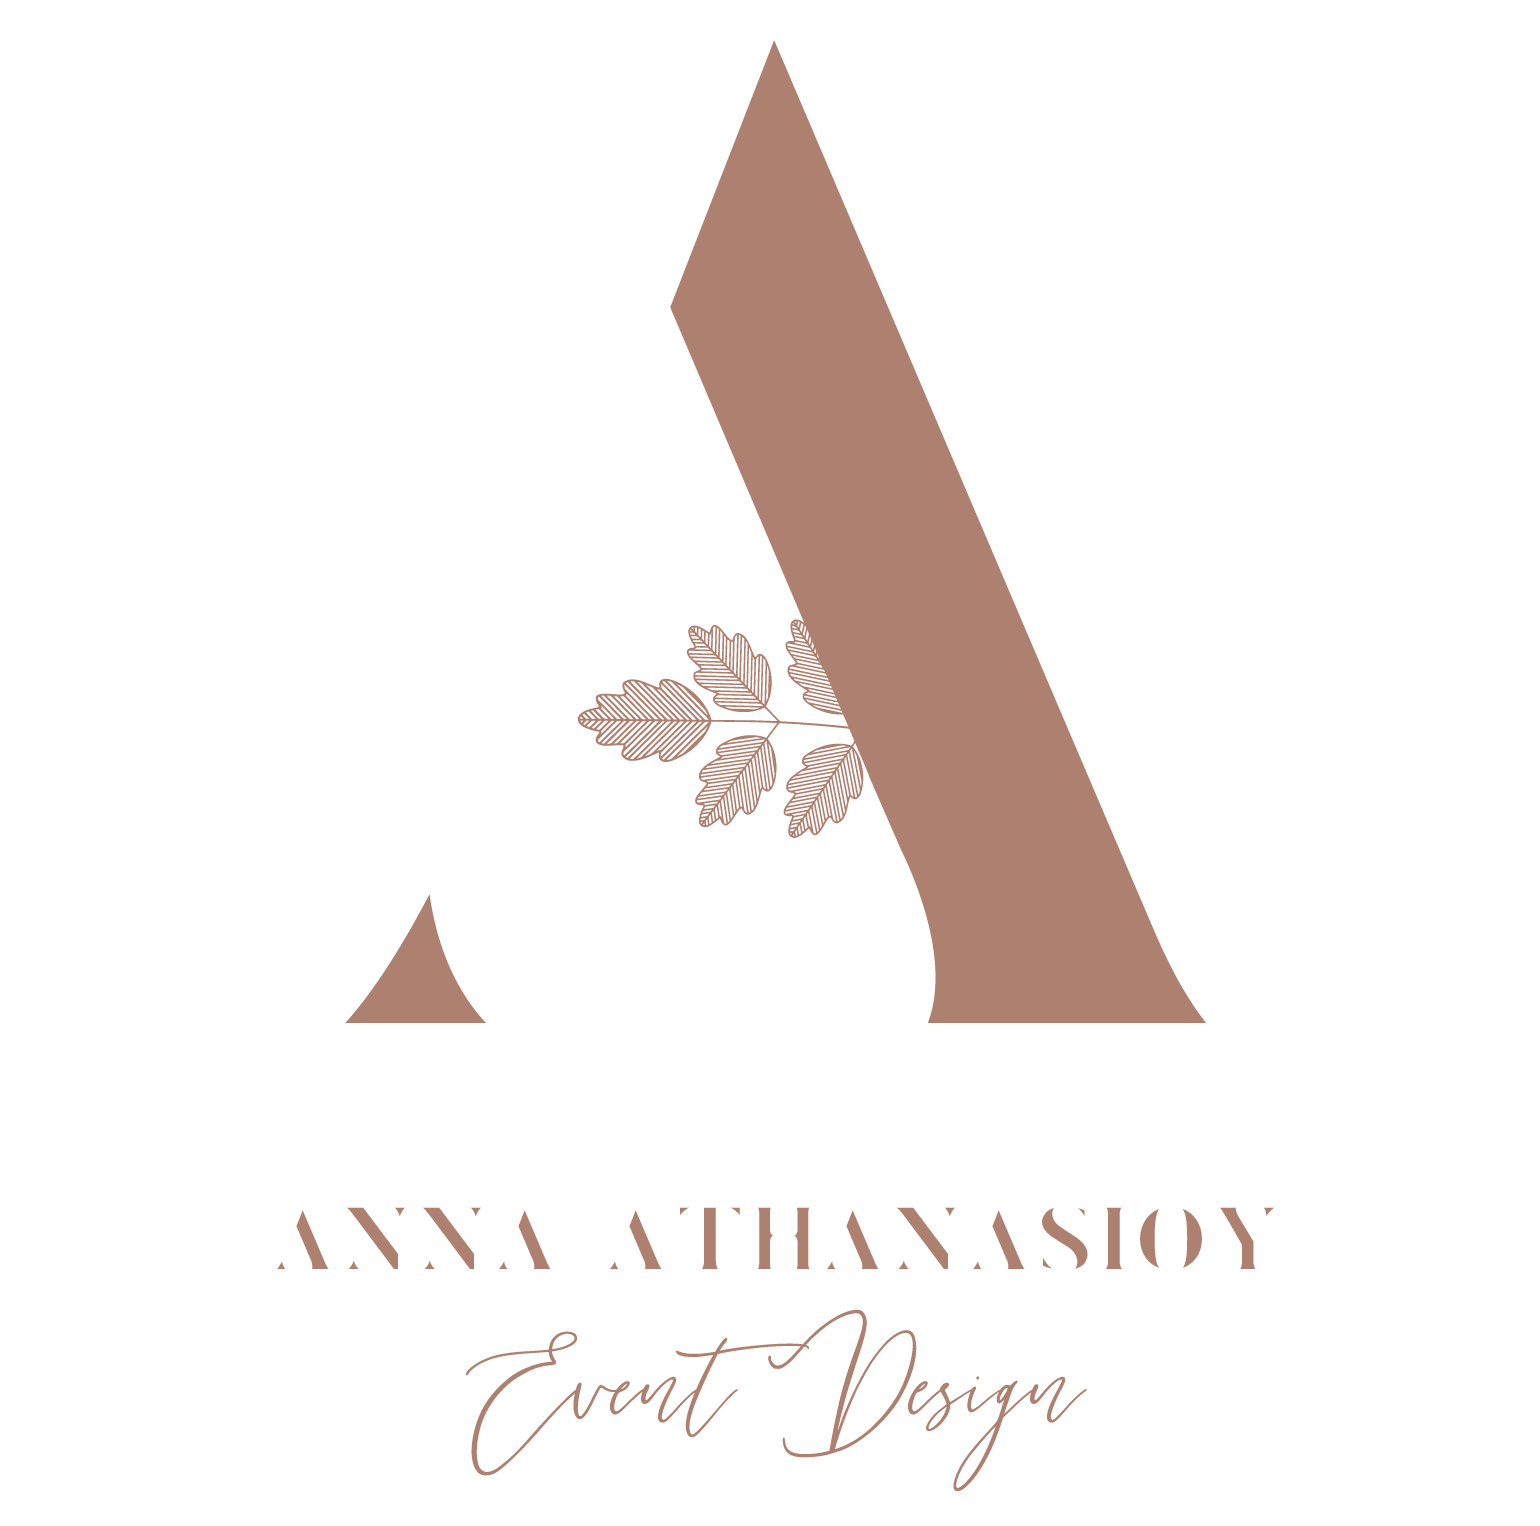 Anna Athanasiou Event Planning